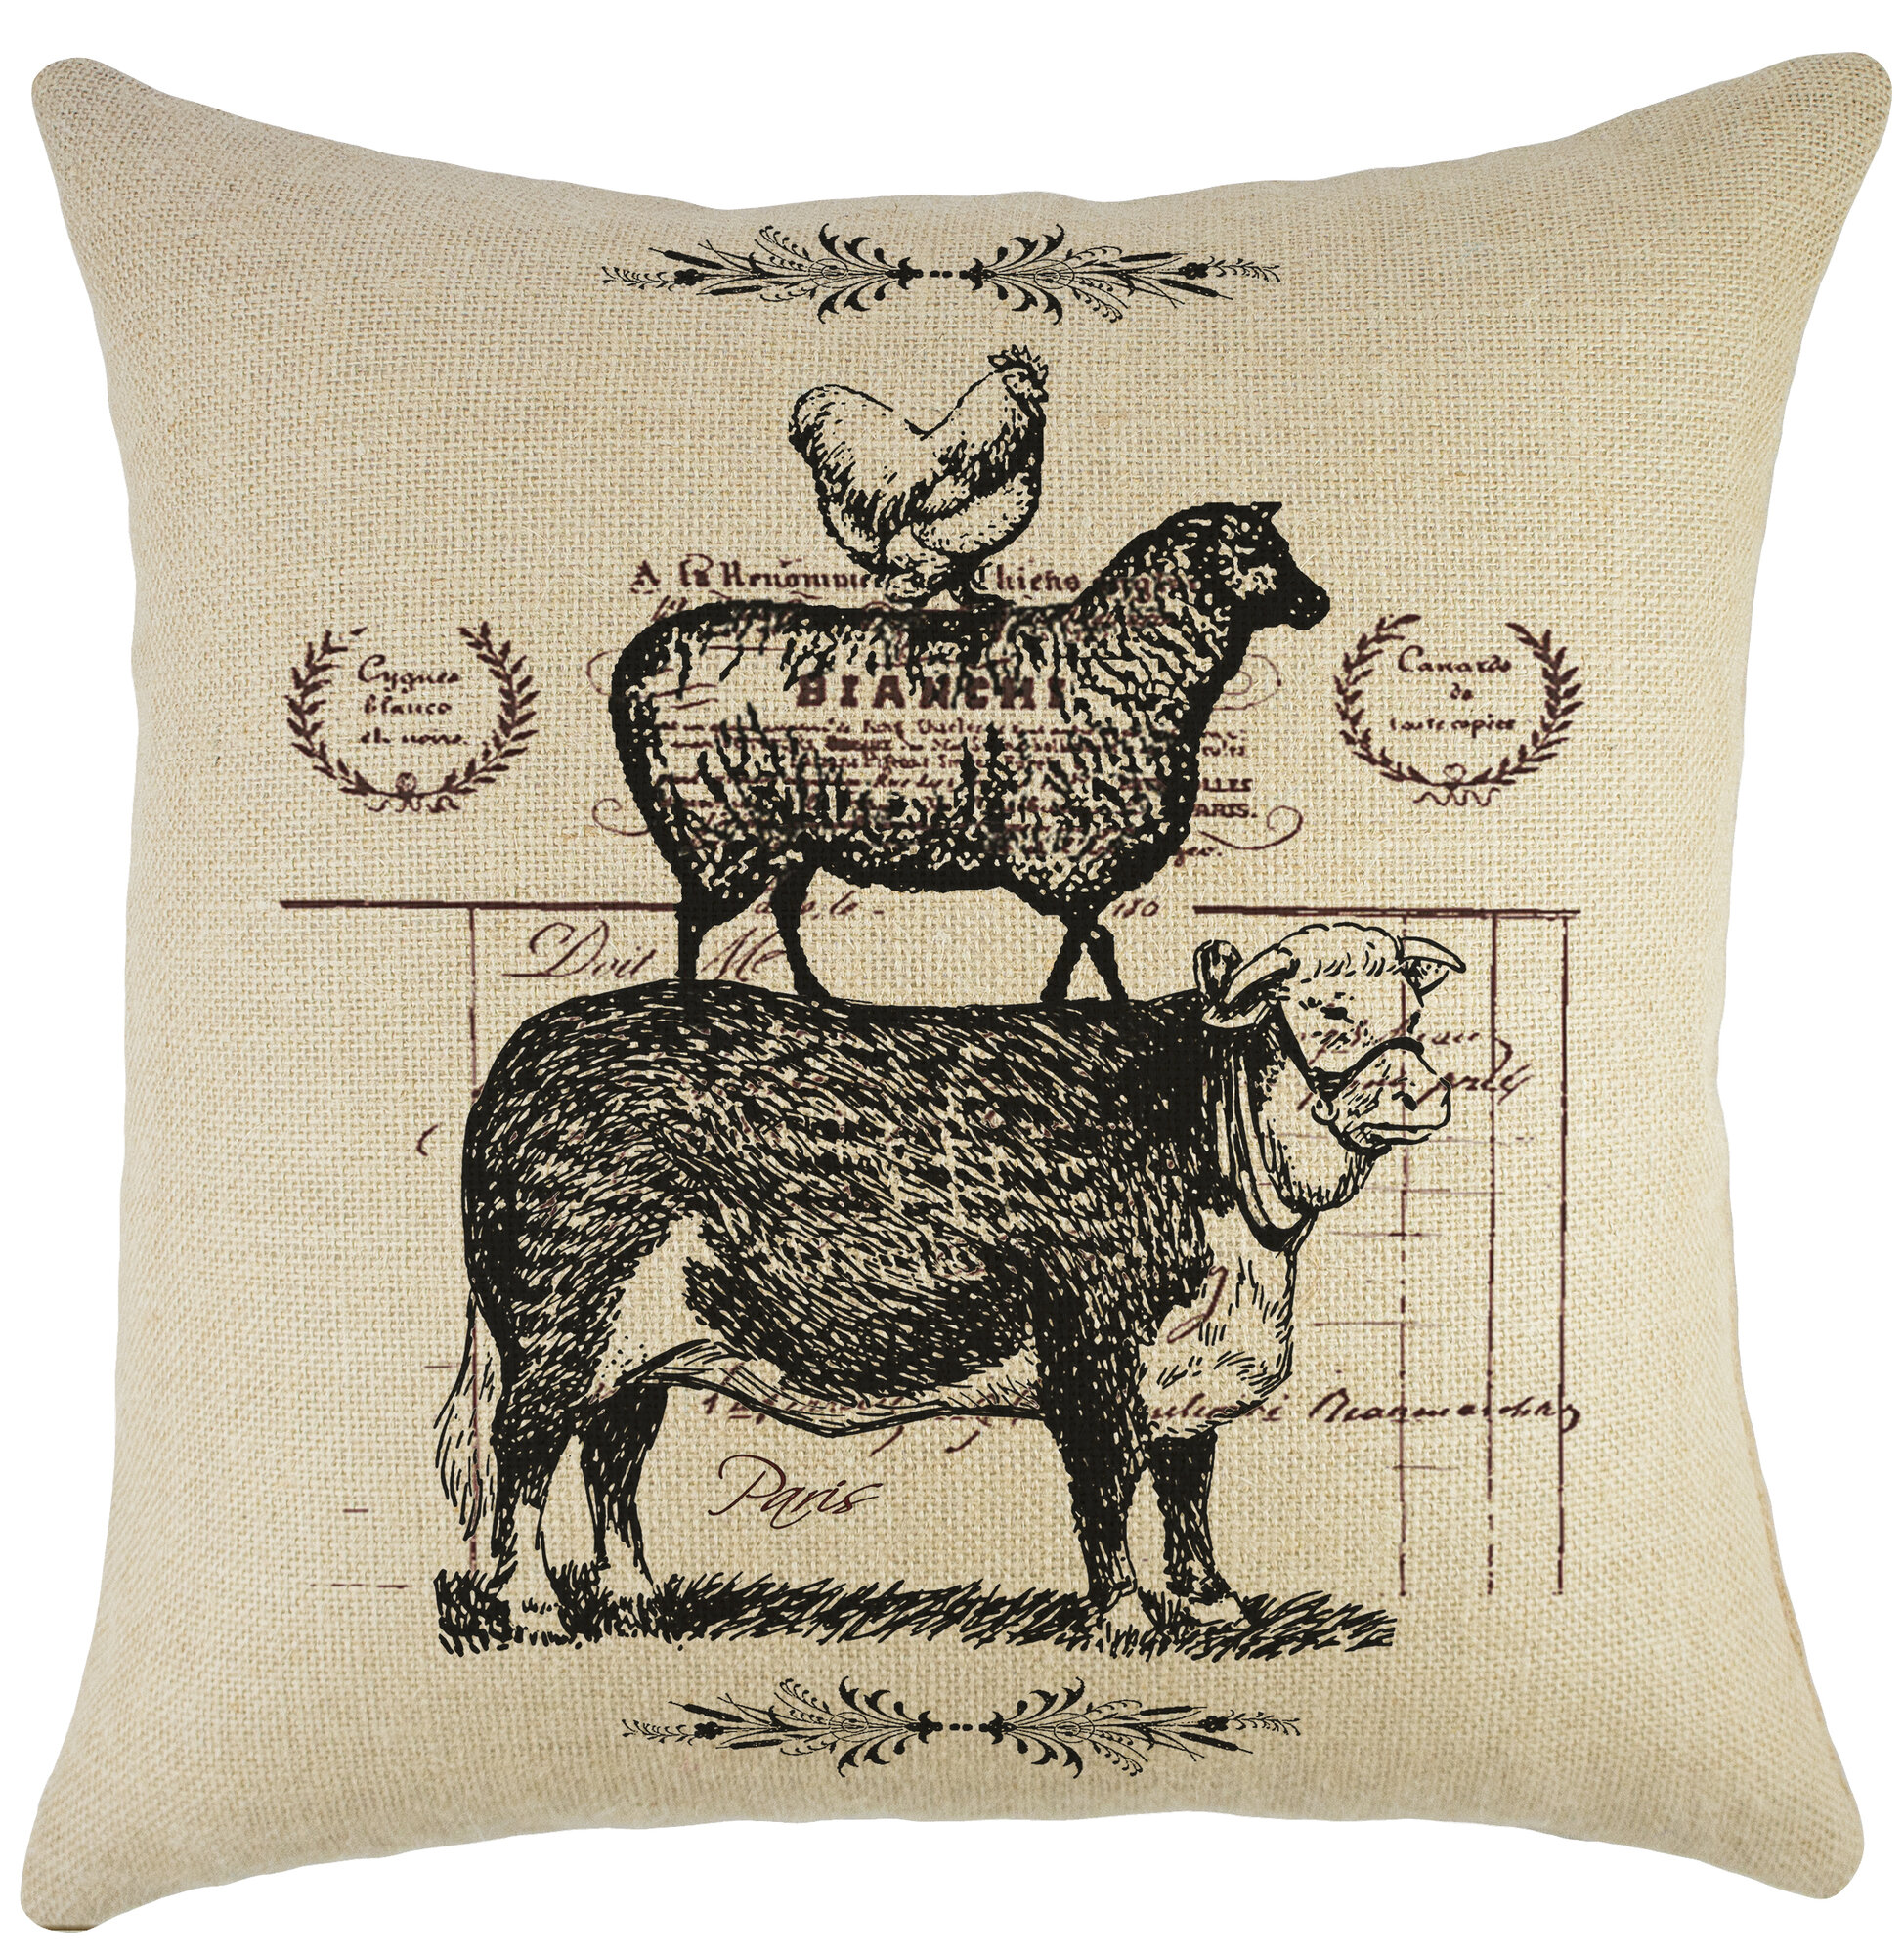 Decorative Pillows With Chickens : TheWatsonShop Cow Sheep Chicken Burlap Throw Pillow eBay